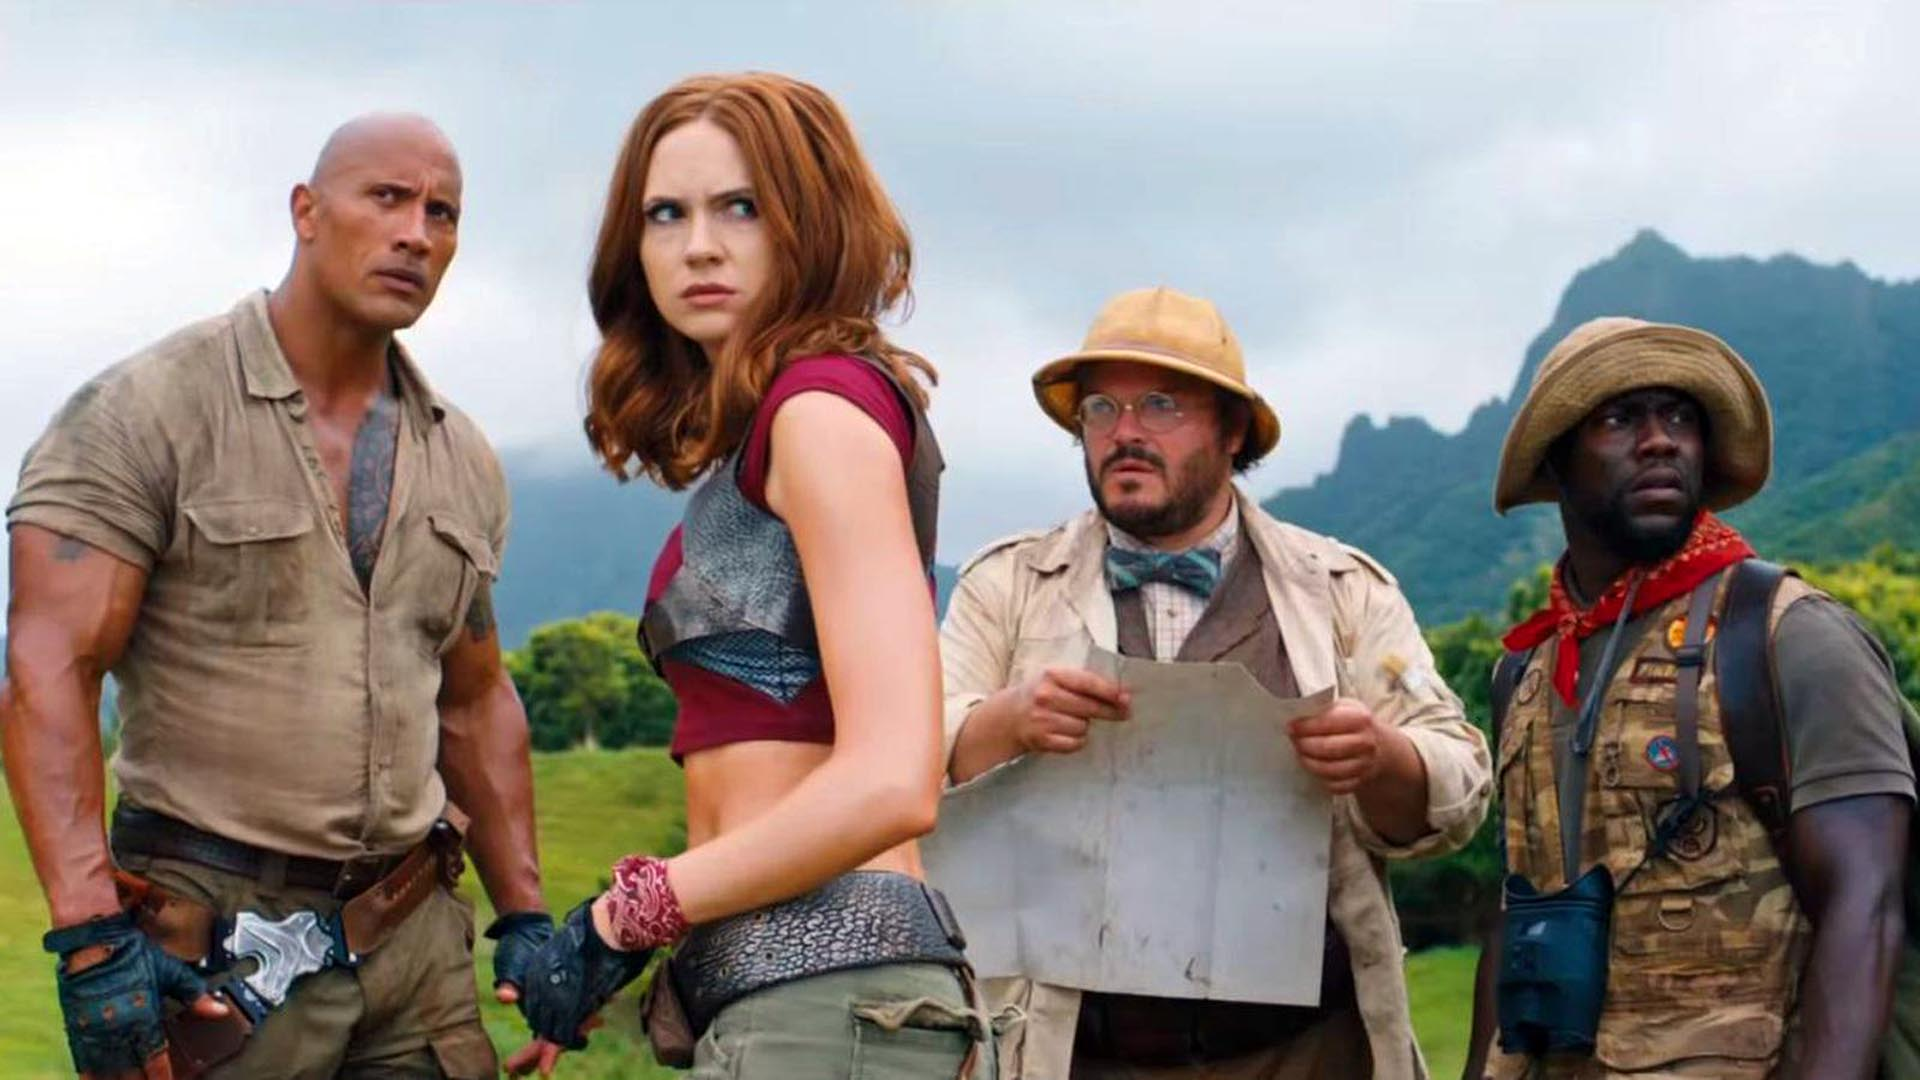 Jumanji: Welcome to the Jungle director says sequel will move ...